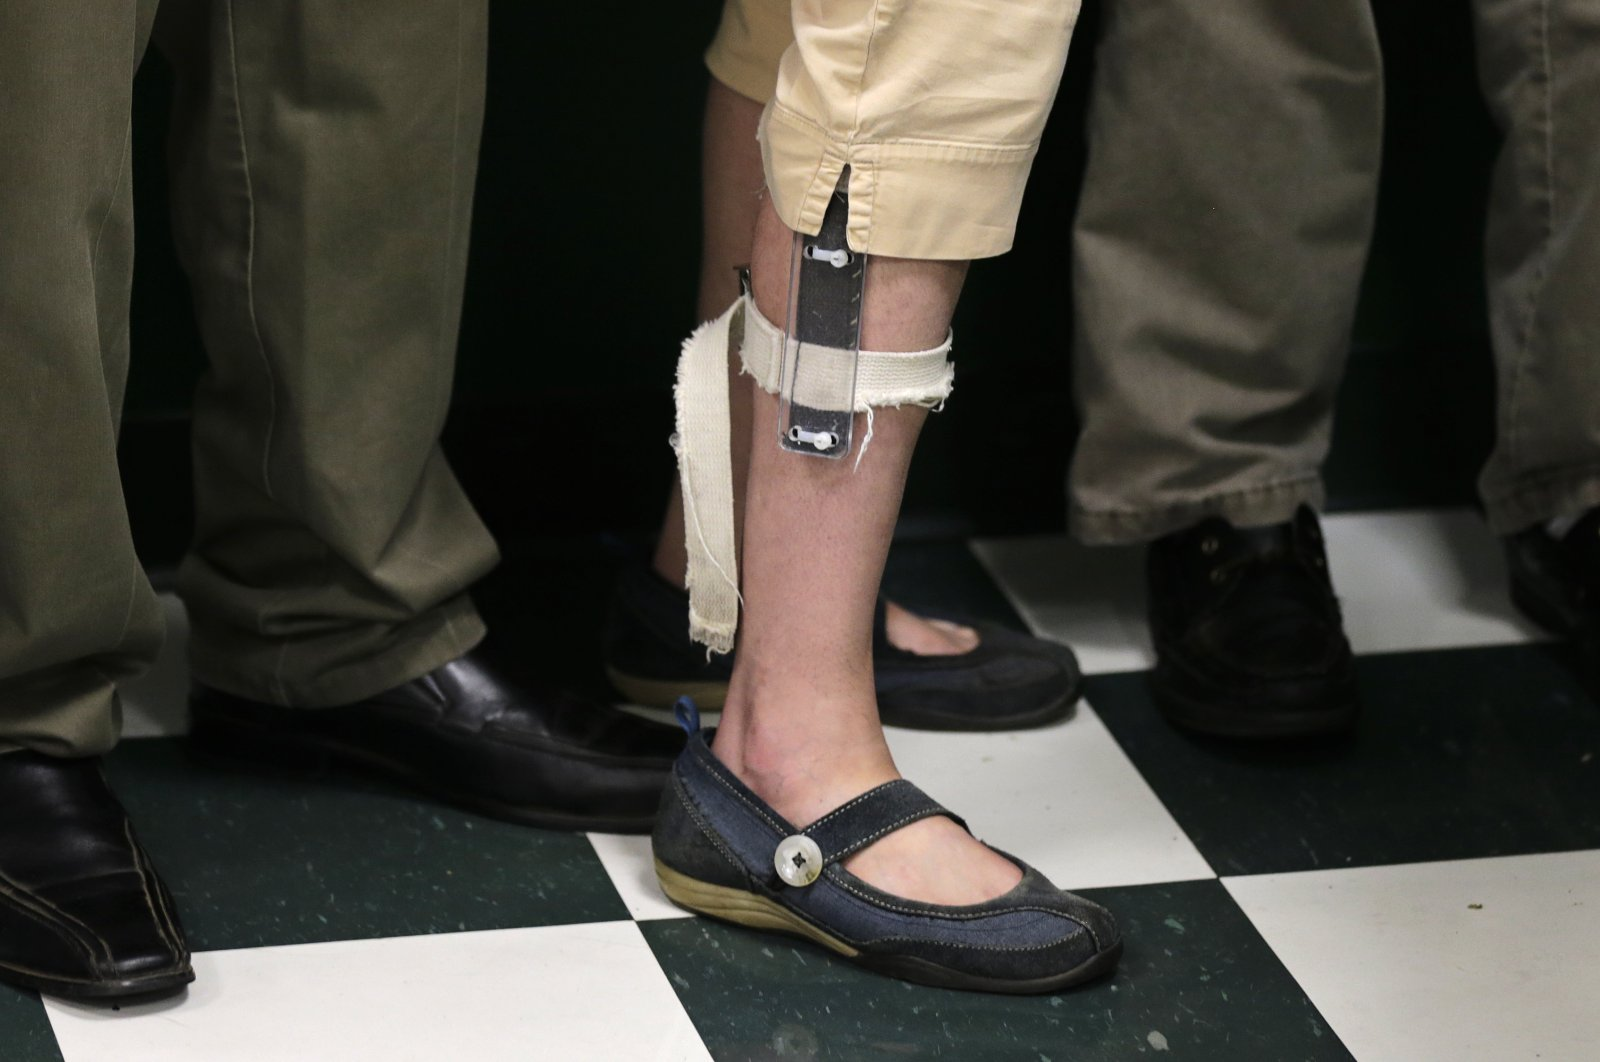 In this Aug. 13, 2014 photo, a female student wearing a shocking device on her leg lines up with classmates after lunch at the Judge Rotenberg Educational Center in Canton, Mass. (AP Photo)